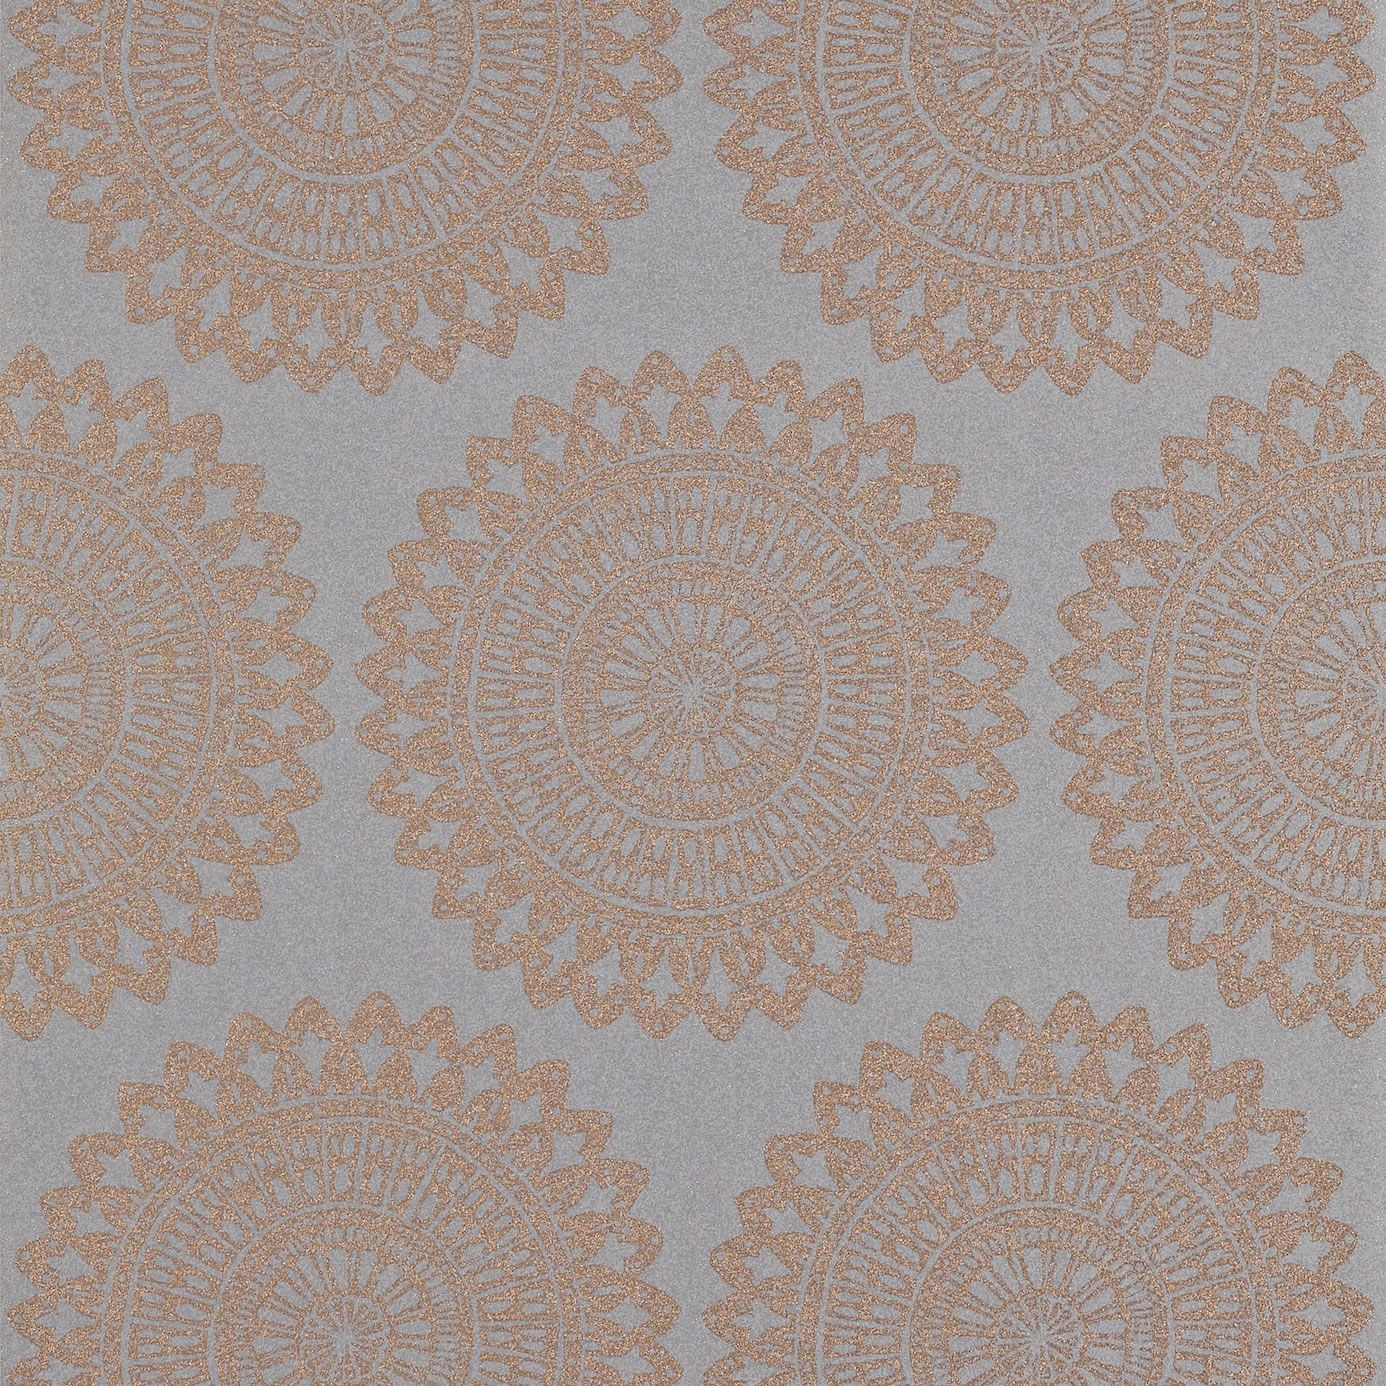 Copper Grey   110628   Medina   Leonida   Harlequin Wallpaper 1386x1386